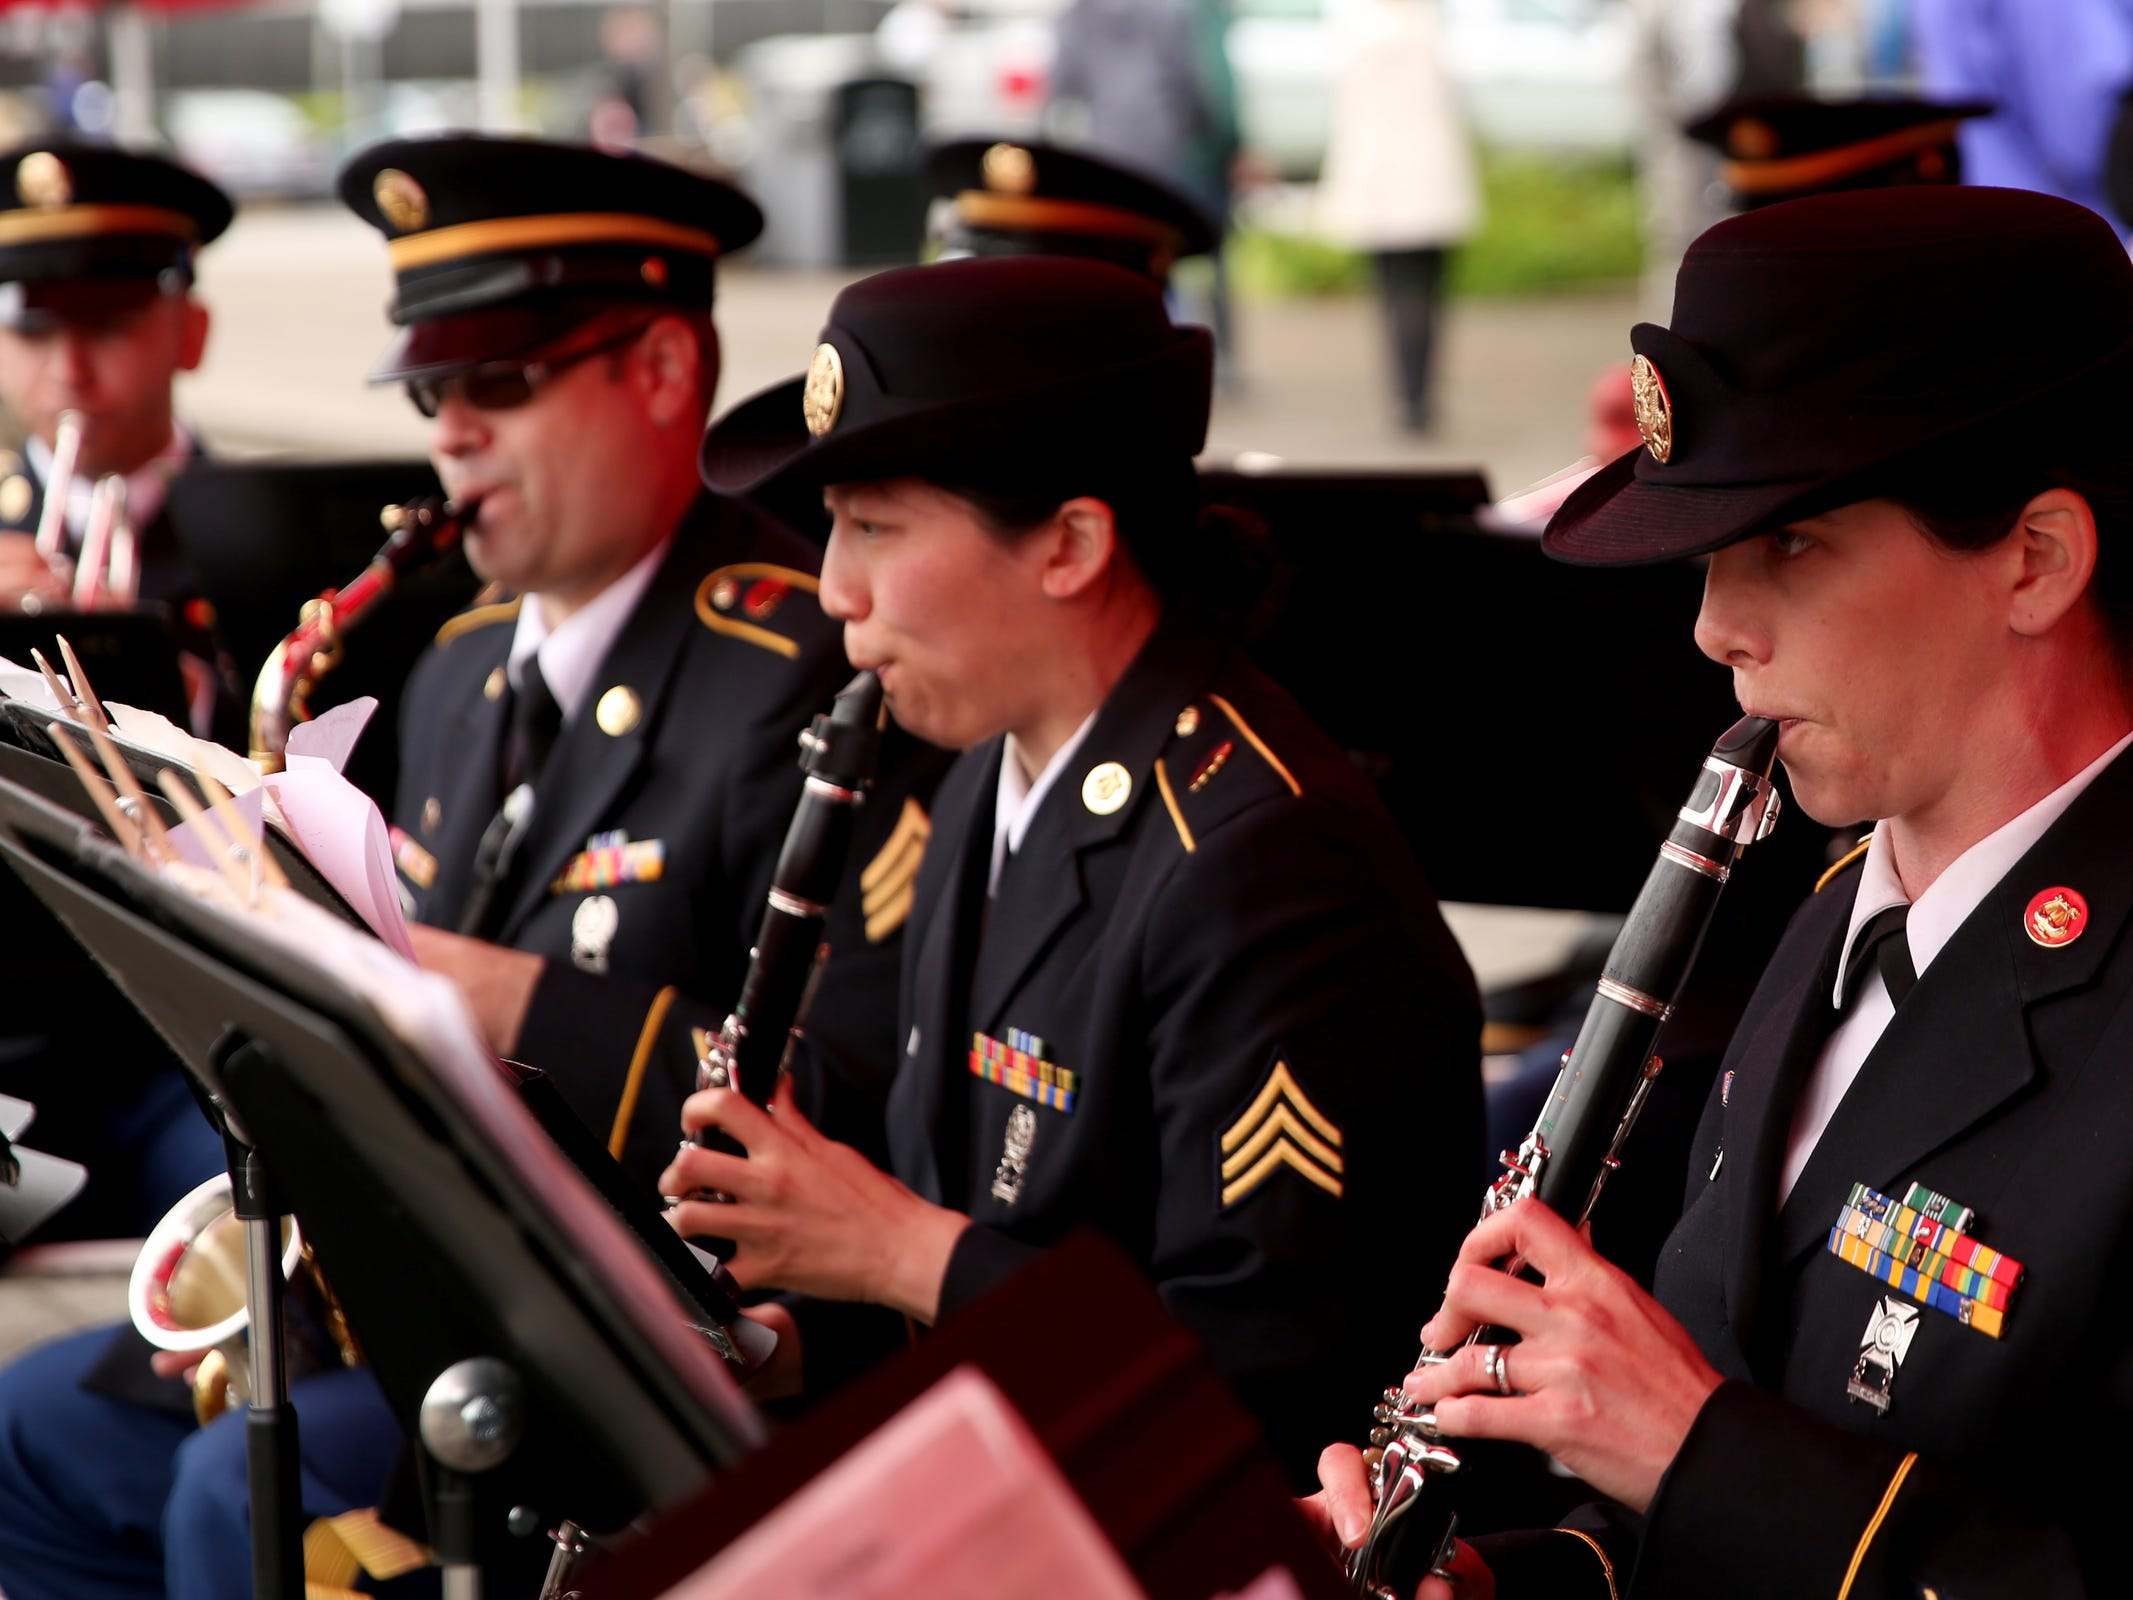 The Oregon Army National GuardÕs 234th Army Band performs during an Armed Forces Day celebration at the Oregon State Capitol in Salem on May 14, 2019.